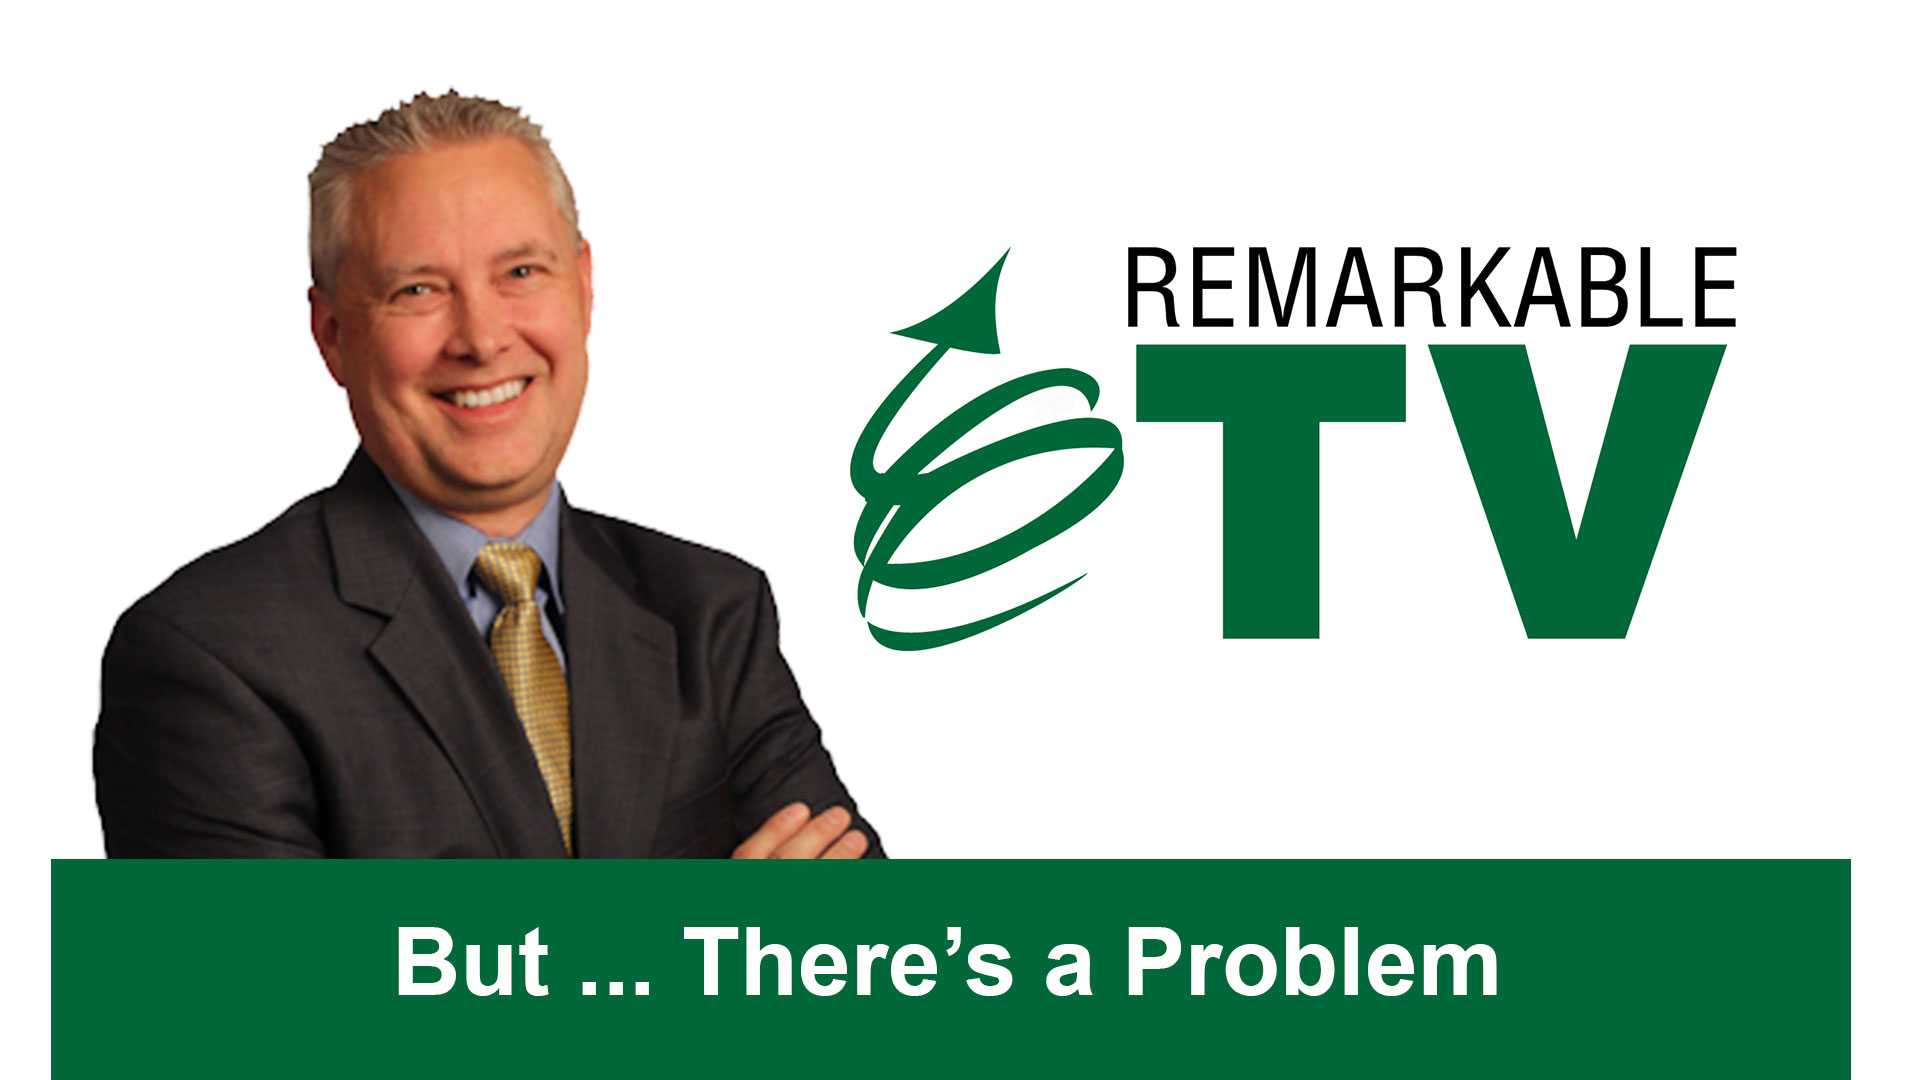 Remarkable TV: But ... There's a Problem with Kevin Eikenberry at the Leadership & Learning Blog